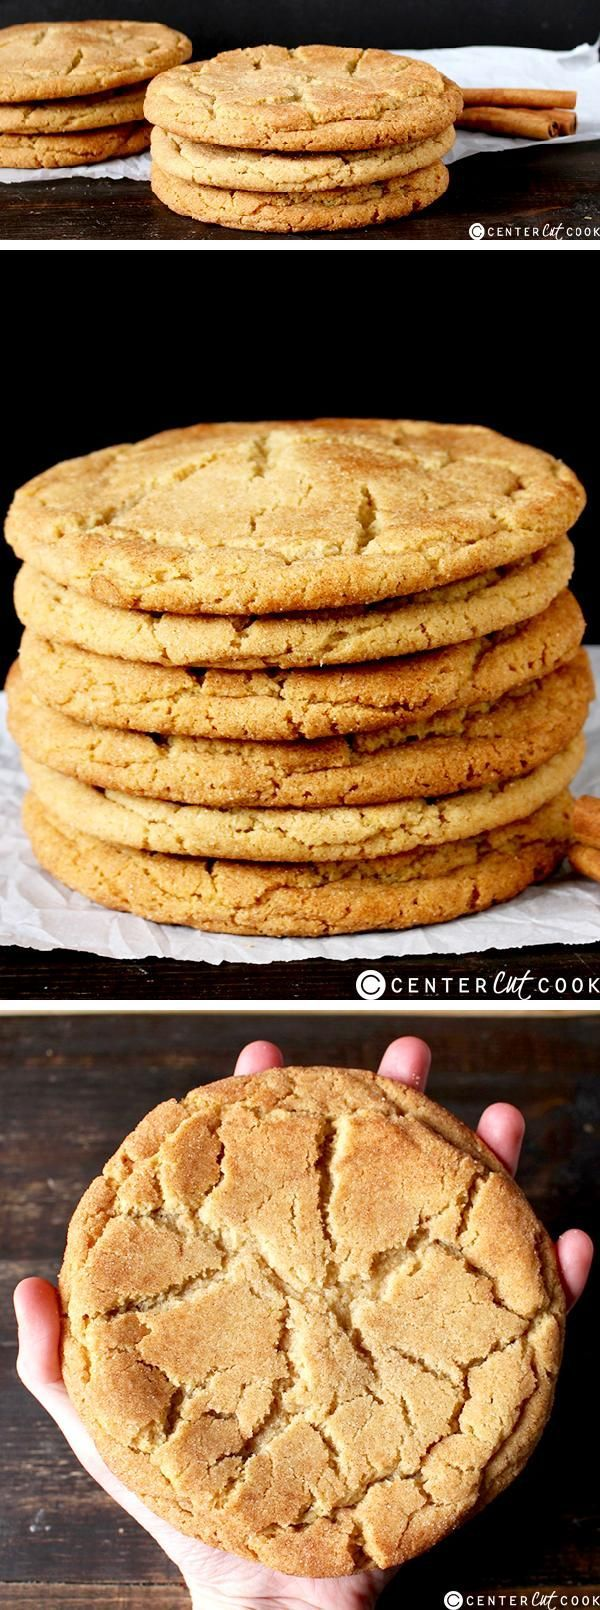 These JUMBO SNICKERDOODLE COOKIES are a giant take on the classic cookie. They are soft, buttery, thick, and so delicious!